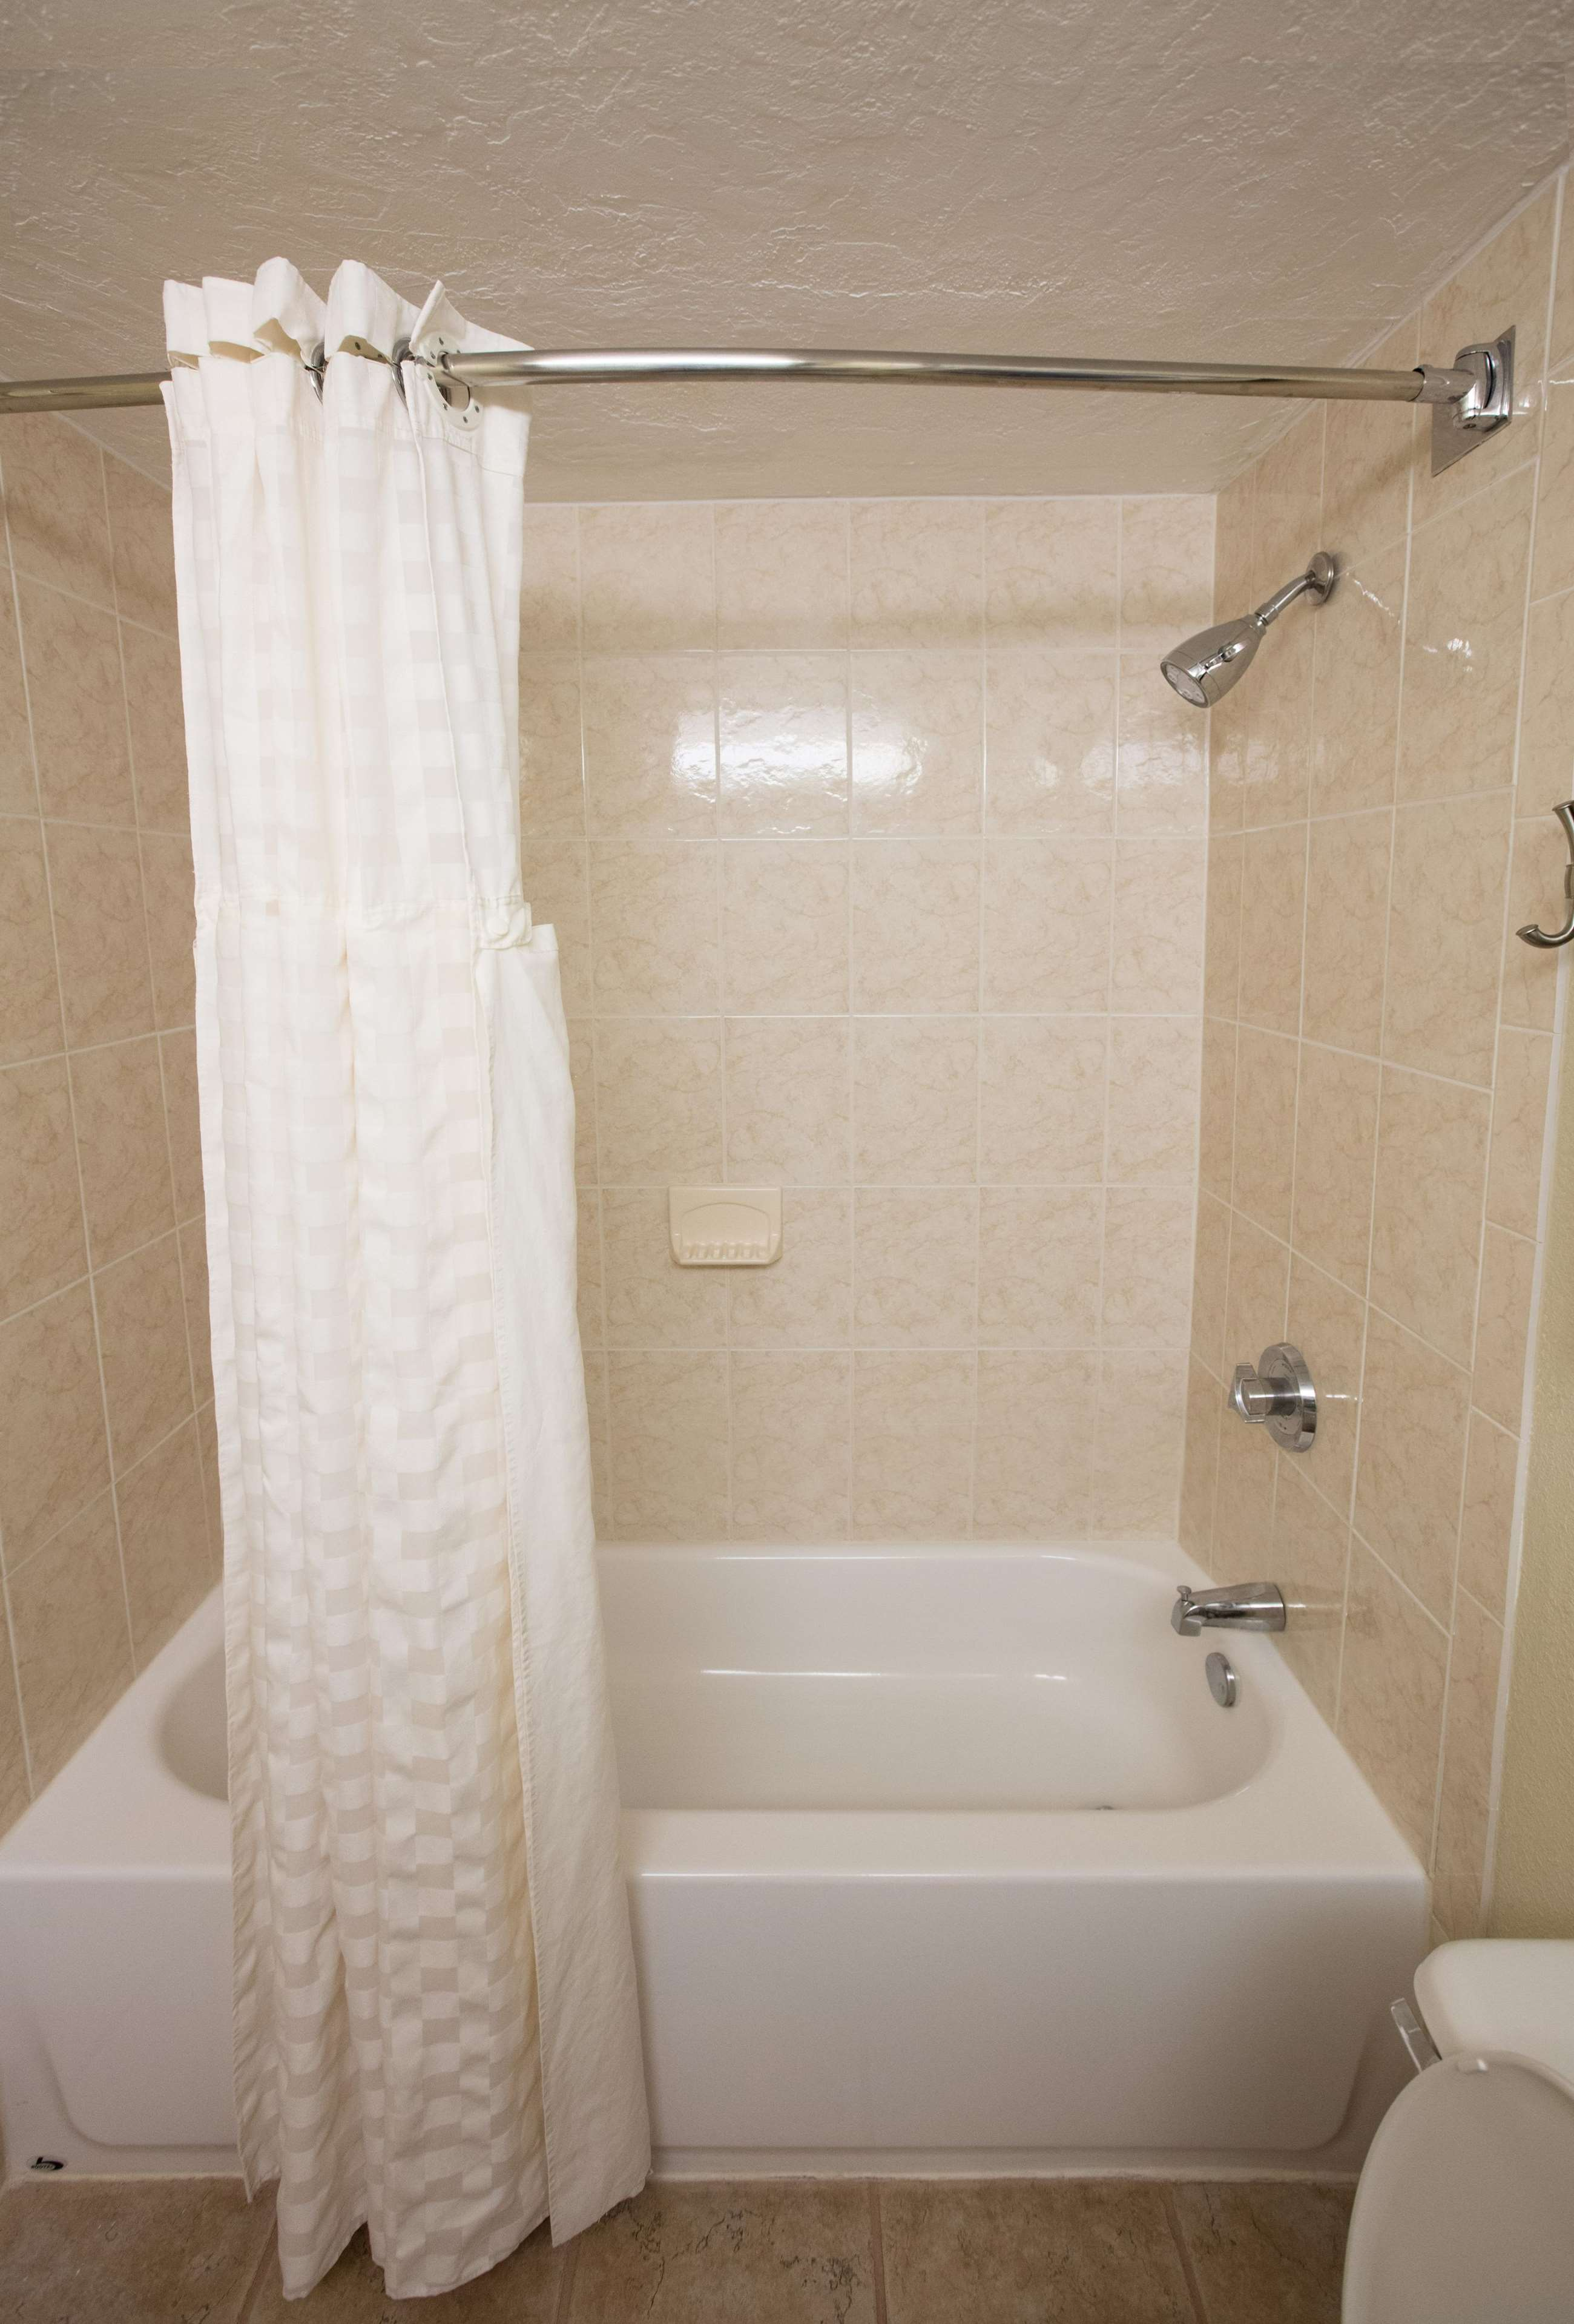 DoubleTree by Hilton Hotel Cocoa Beach Oceanfront image 48